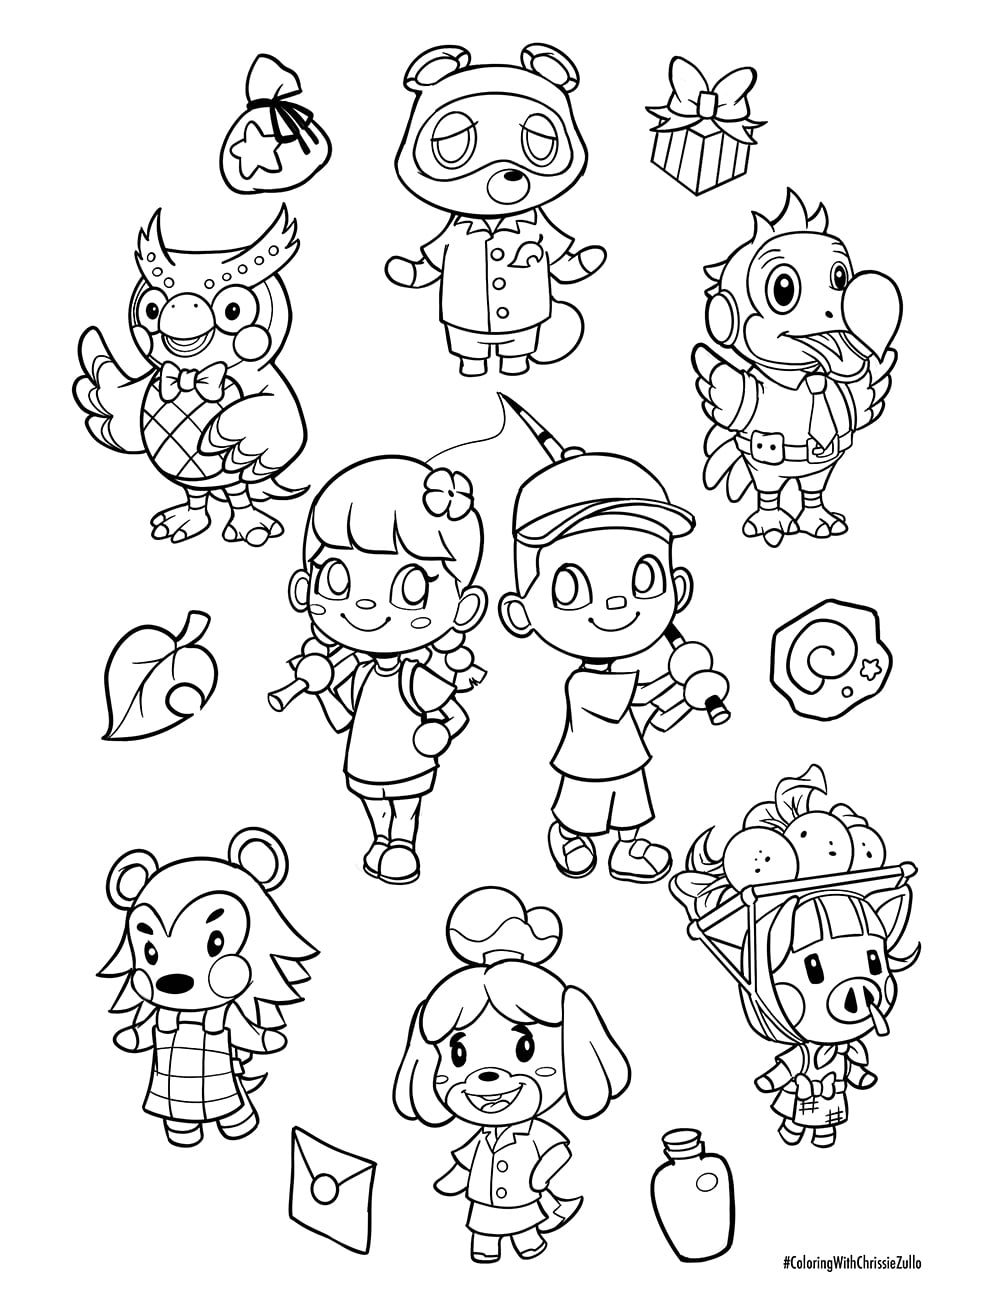 Animal Crossing Coloring Sheet By Chrissie Zullo Rose City Comic Con